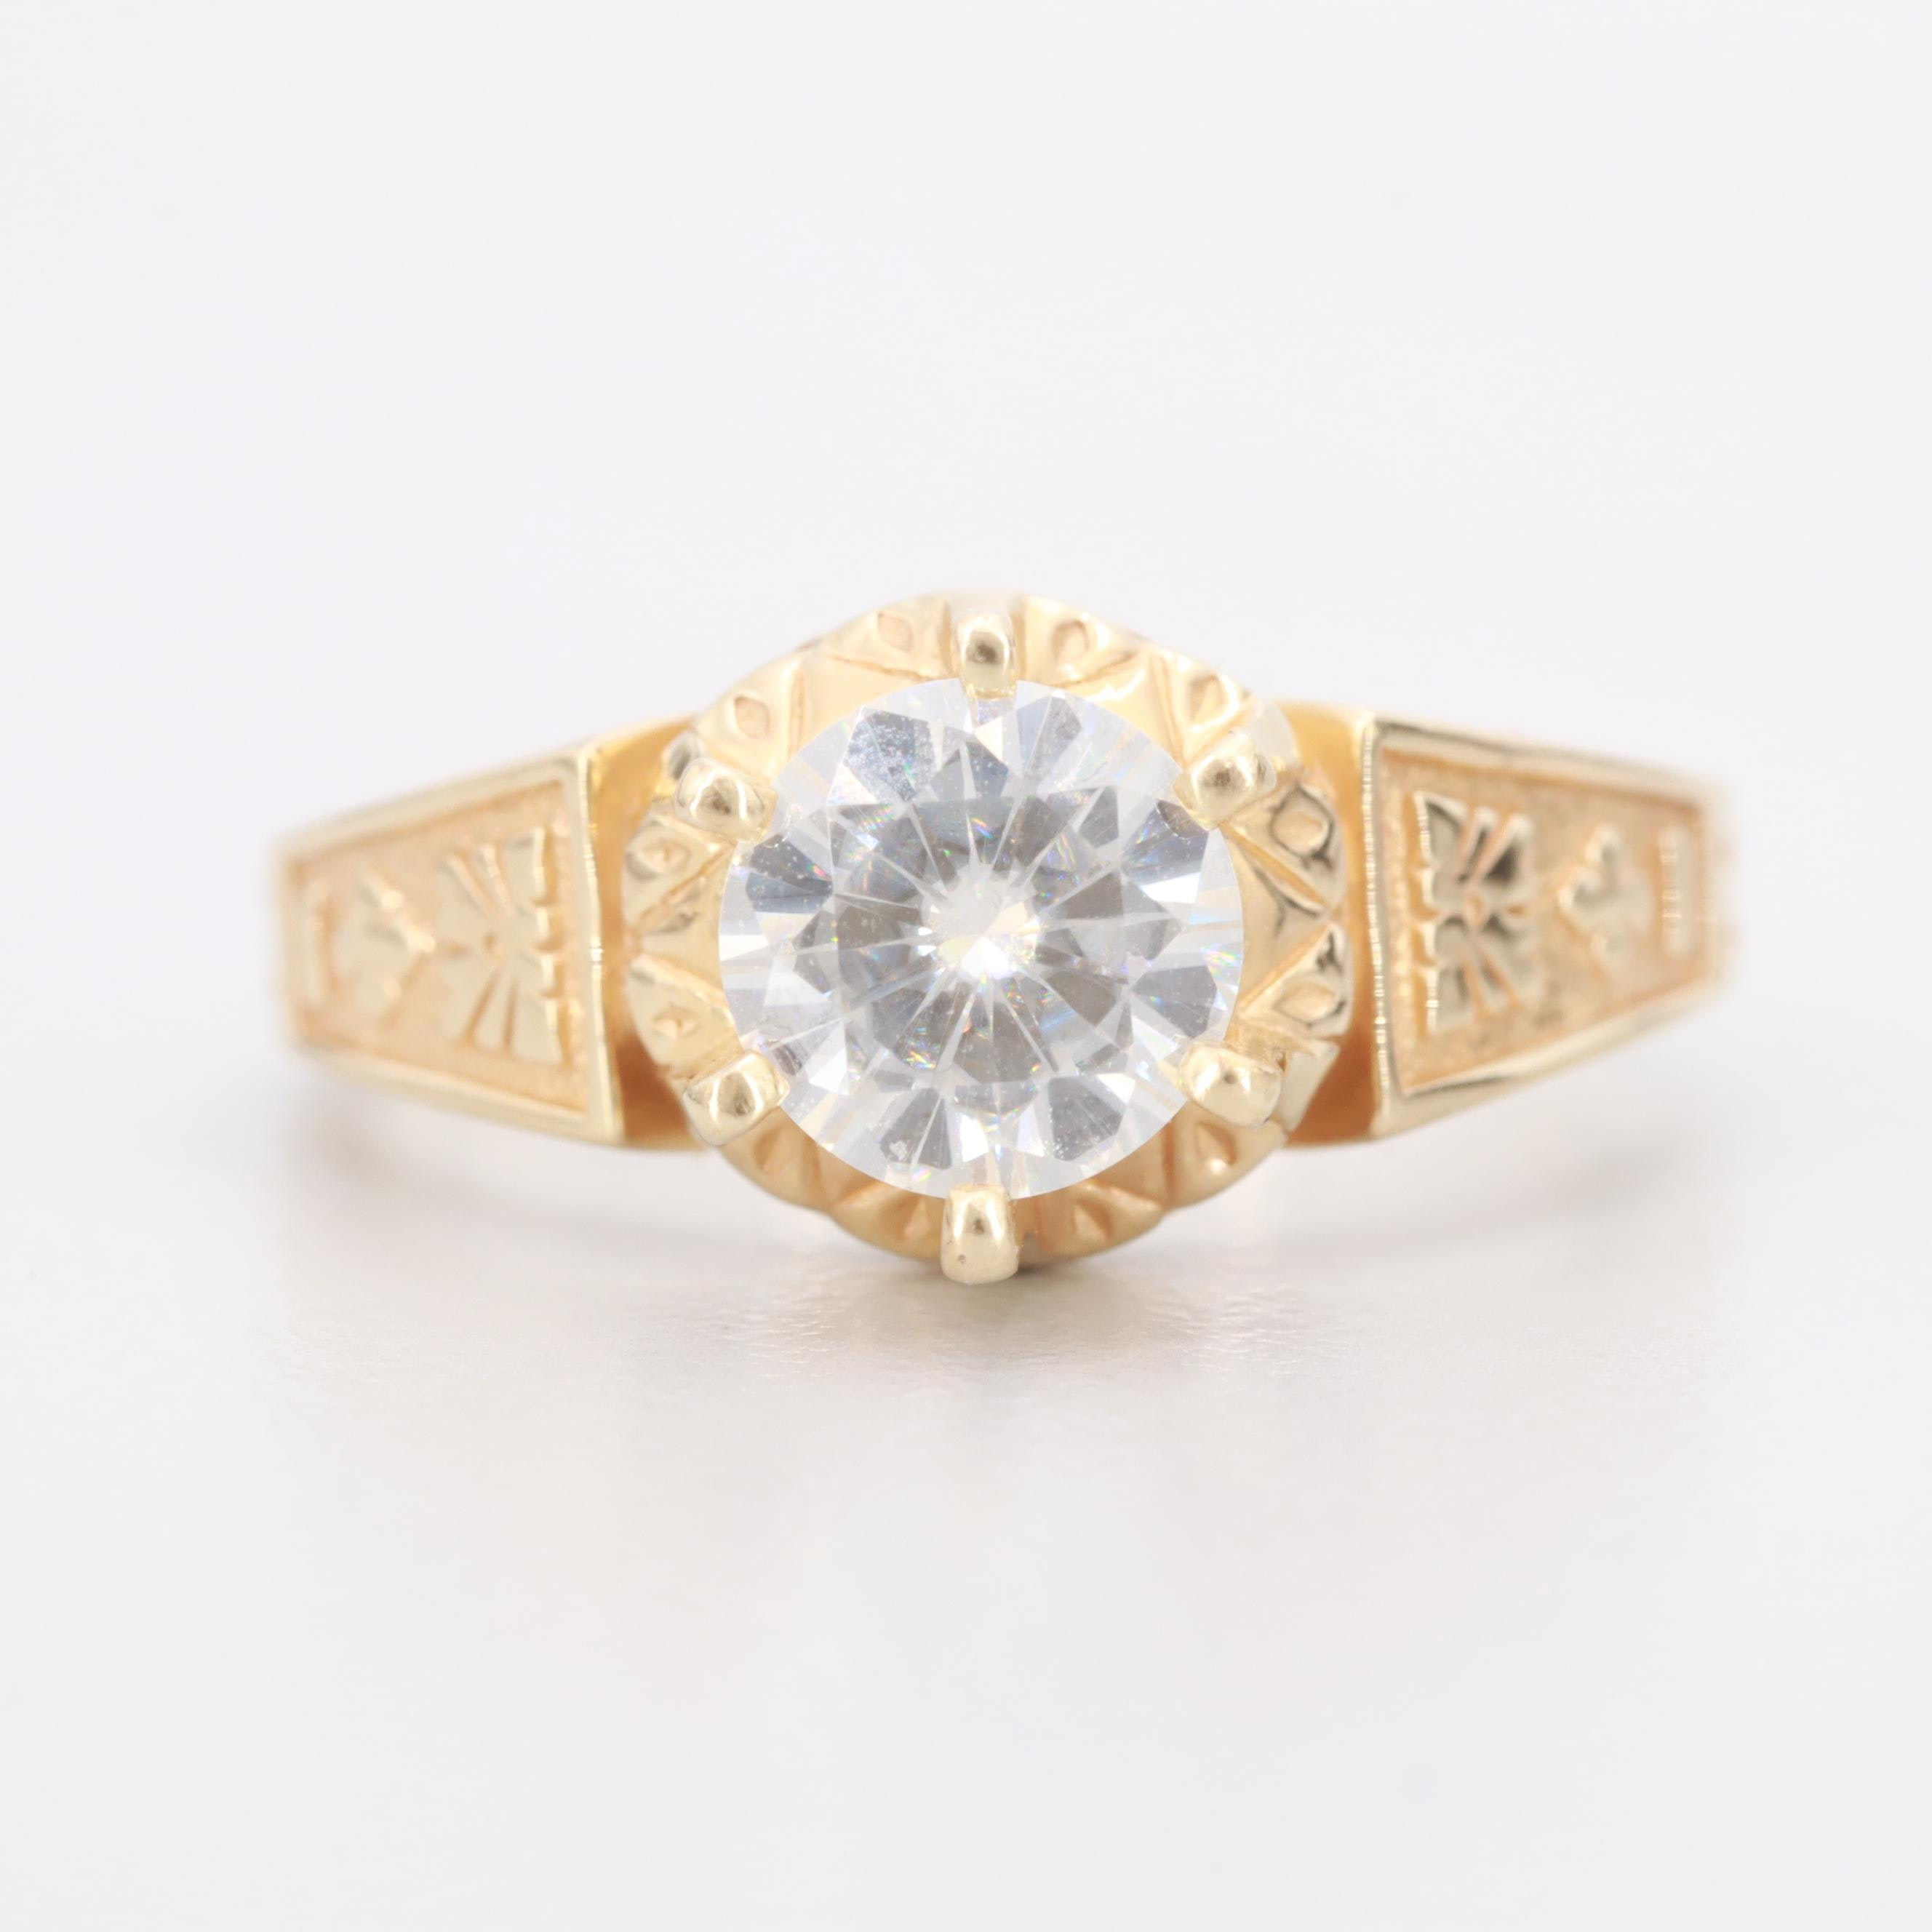 14K Yellow Gold Moissanite Ring